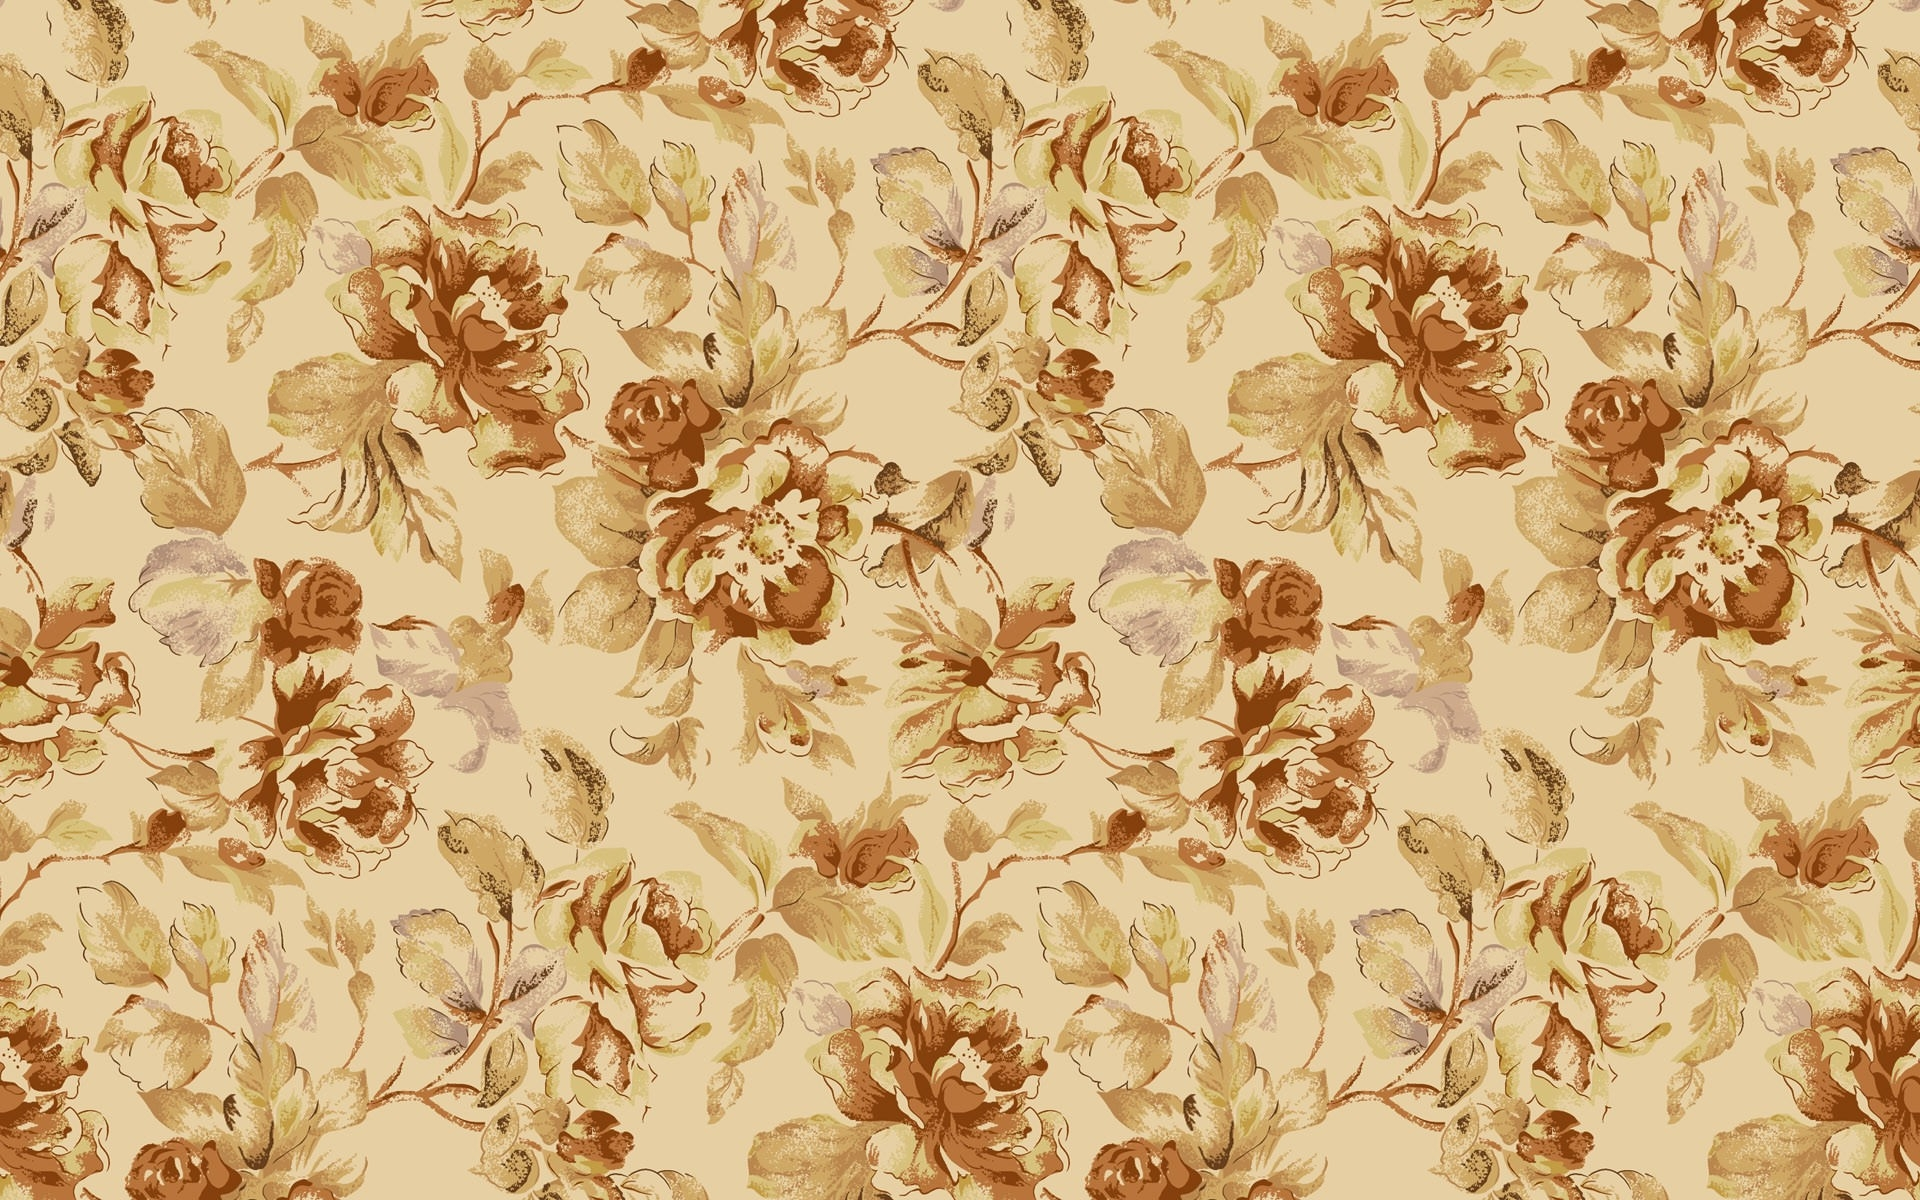 Floral Vintage Backgrounds 31